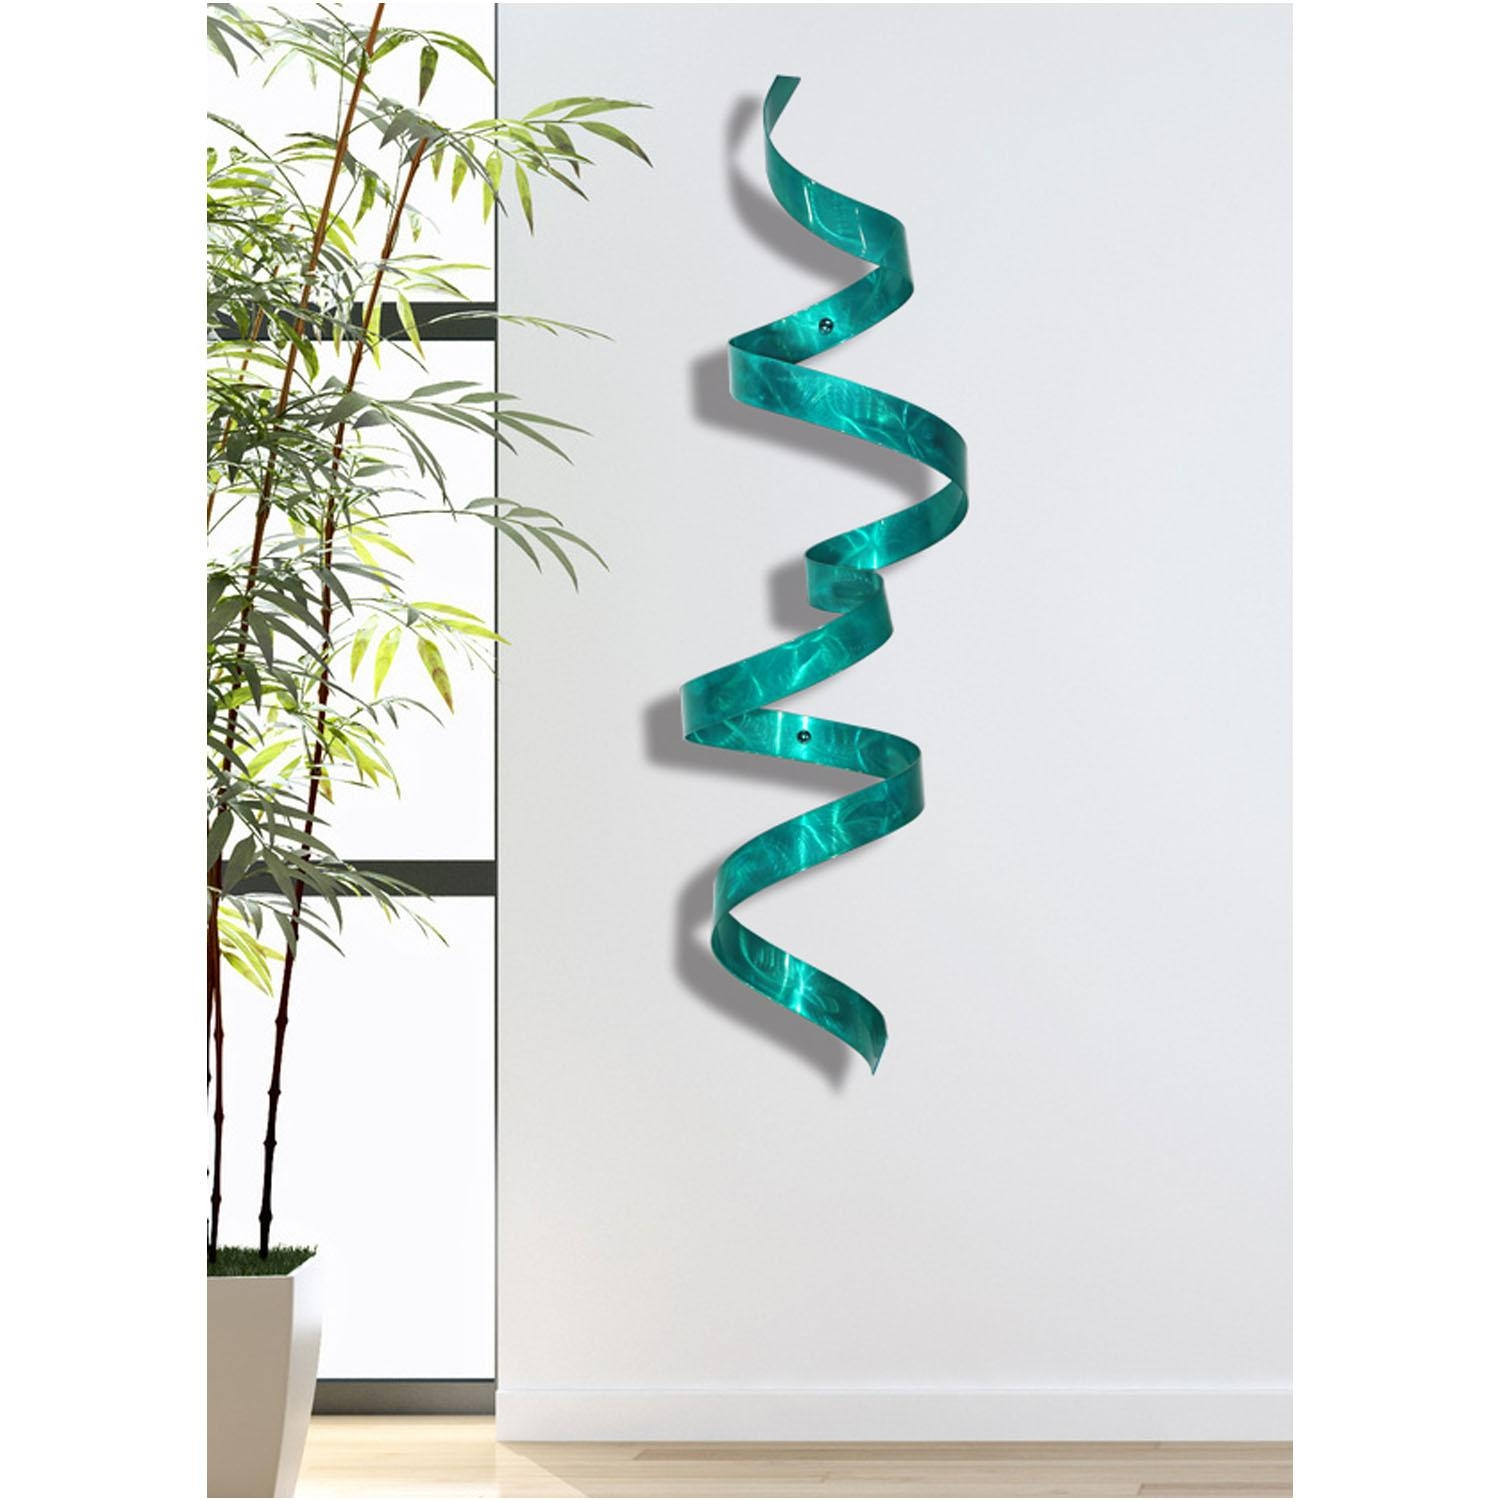 Teal Wall Twist – Blue 3D Abstract Twist Metal Wall Art Sculpture In Teal Metal Wall Art (View 1 of 20)